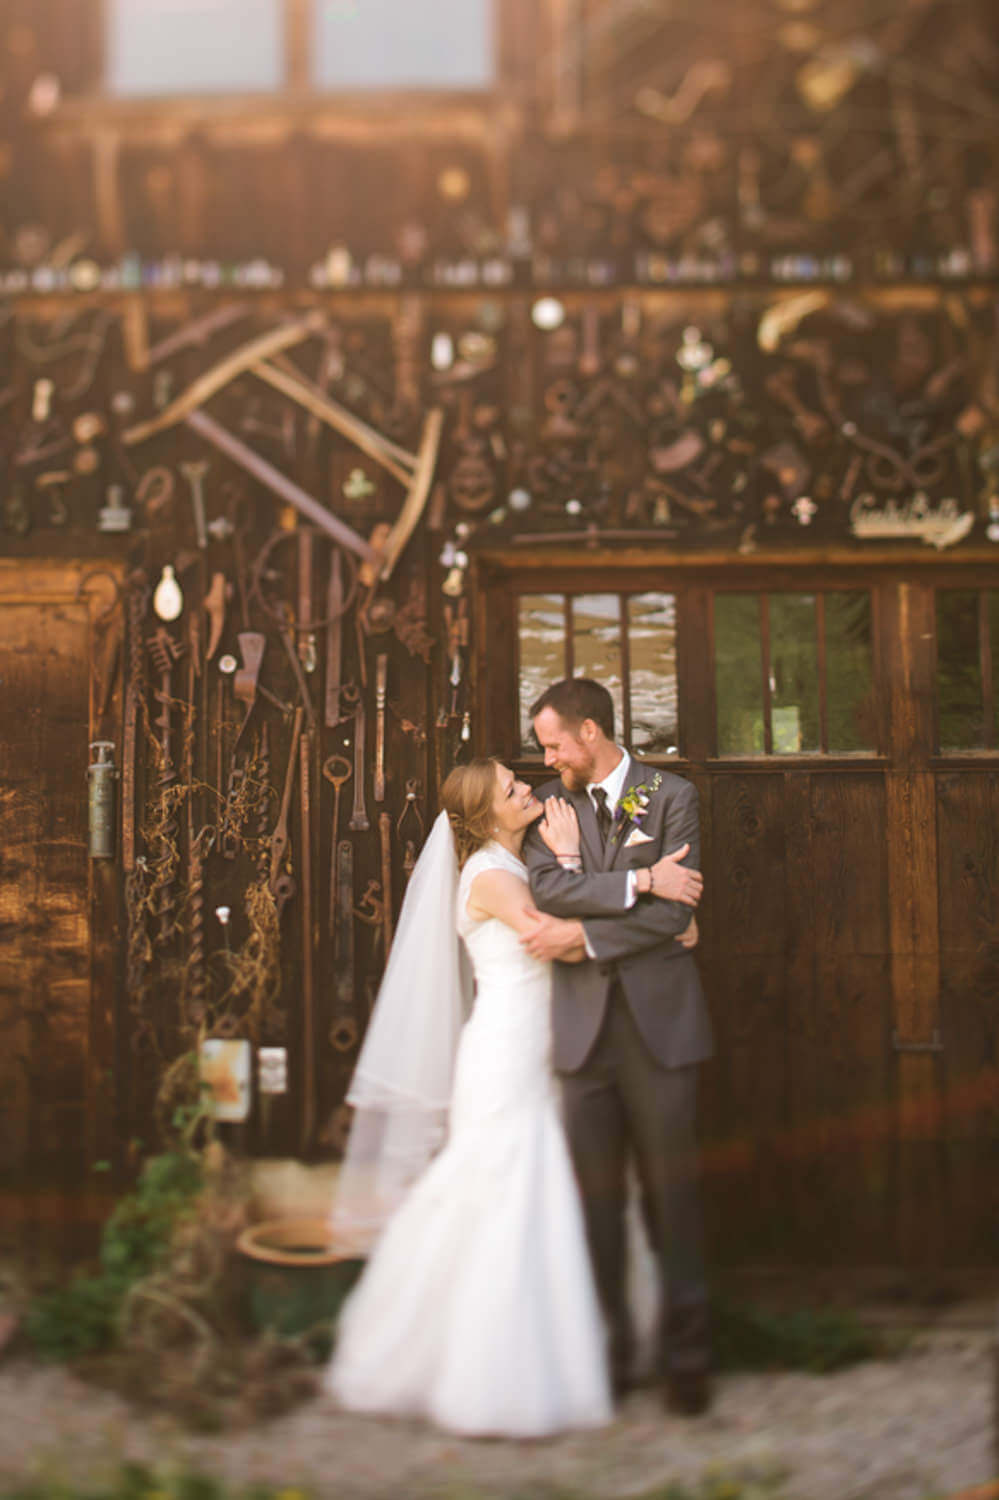 Couple embraces in front of rustic building in Crested Butte, Colorado.